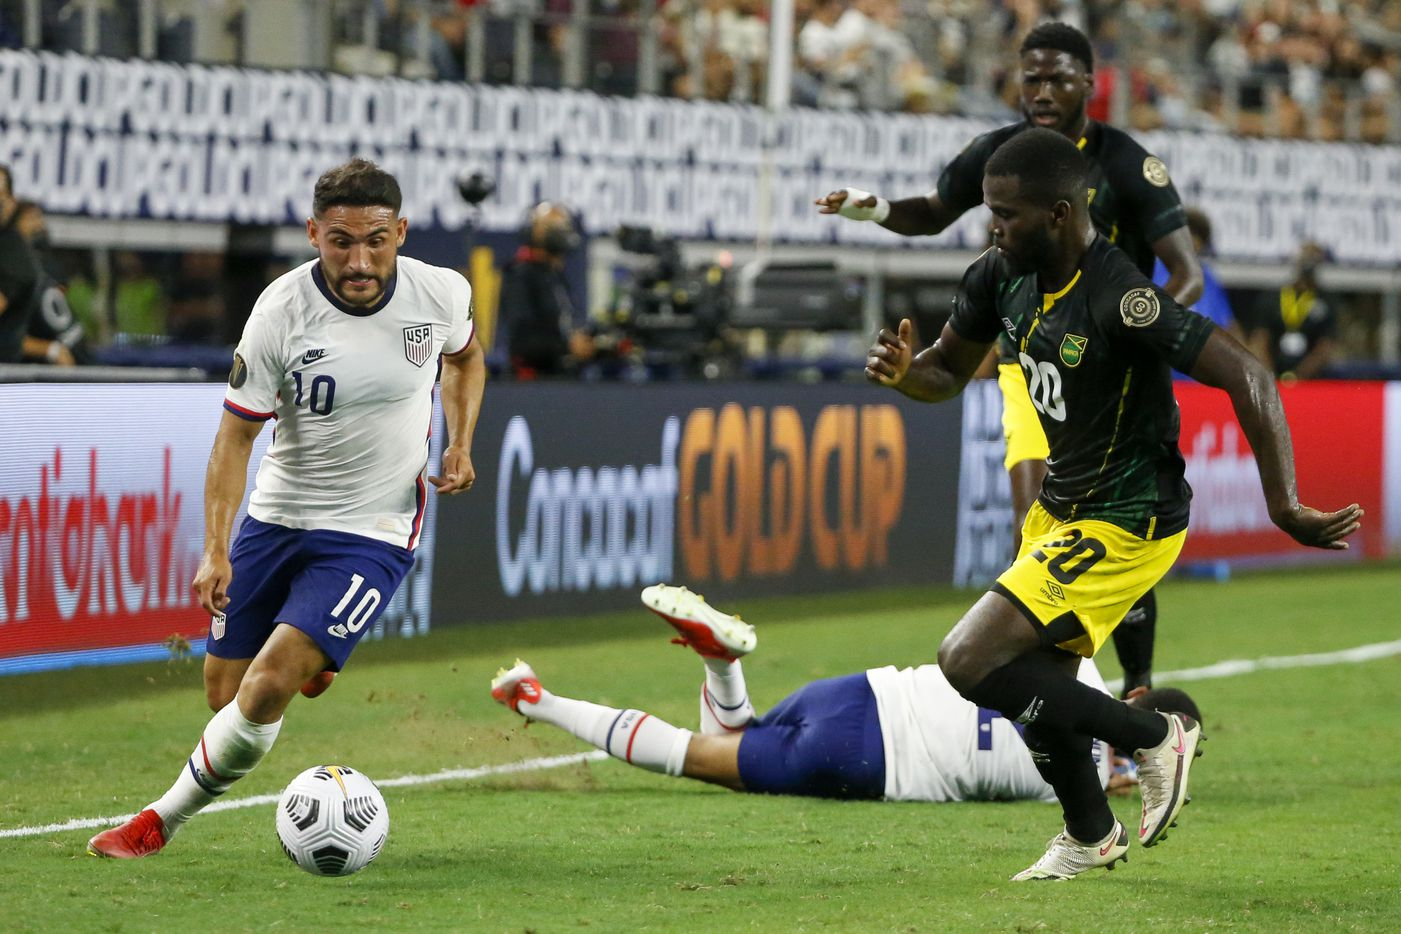 USA midfielder Cristian Roldan (10) dribbles around Jamaica defender Kemar Lawrence (20) during the second half of a CONCACAF Gold Cup quarterfinal soccer match at AT&T Stadium on Sunday, July 25, 2021, in Arlington. (Elias Valverde II/The Dallas Morning News)